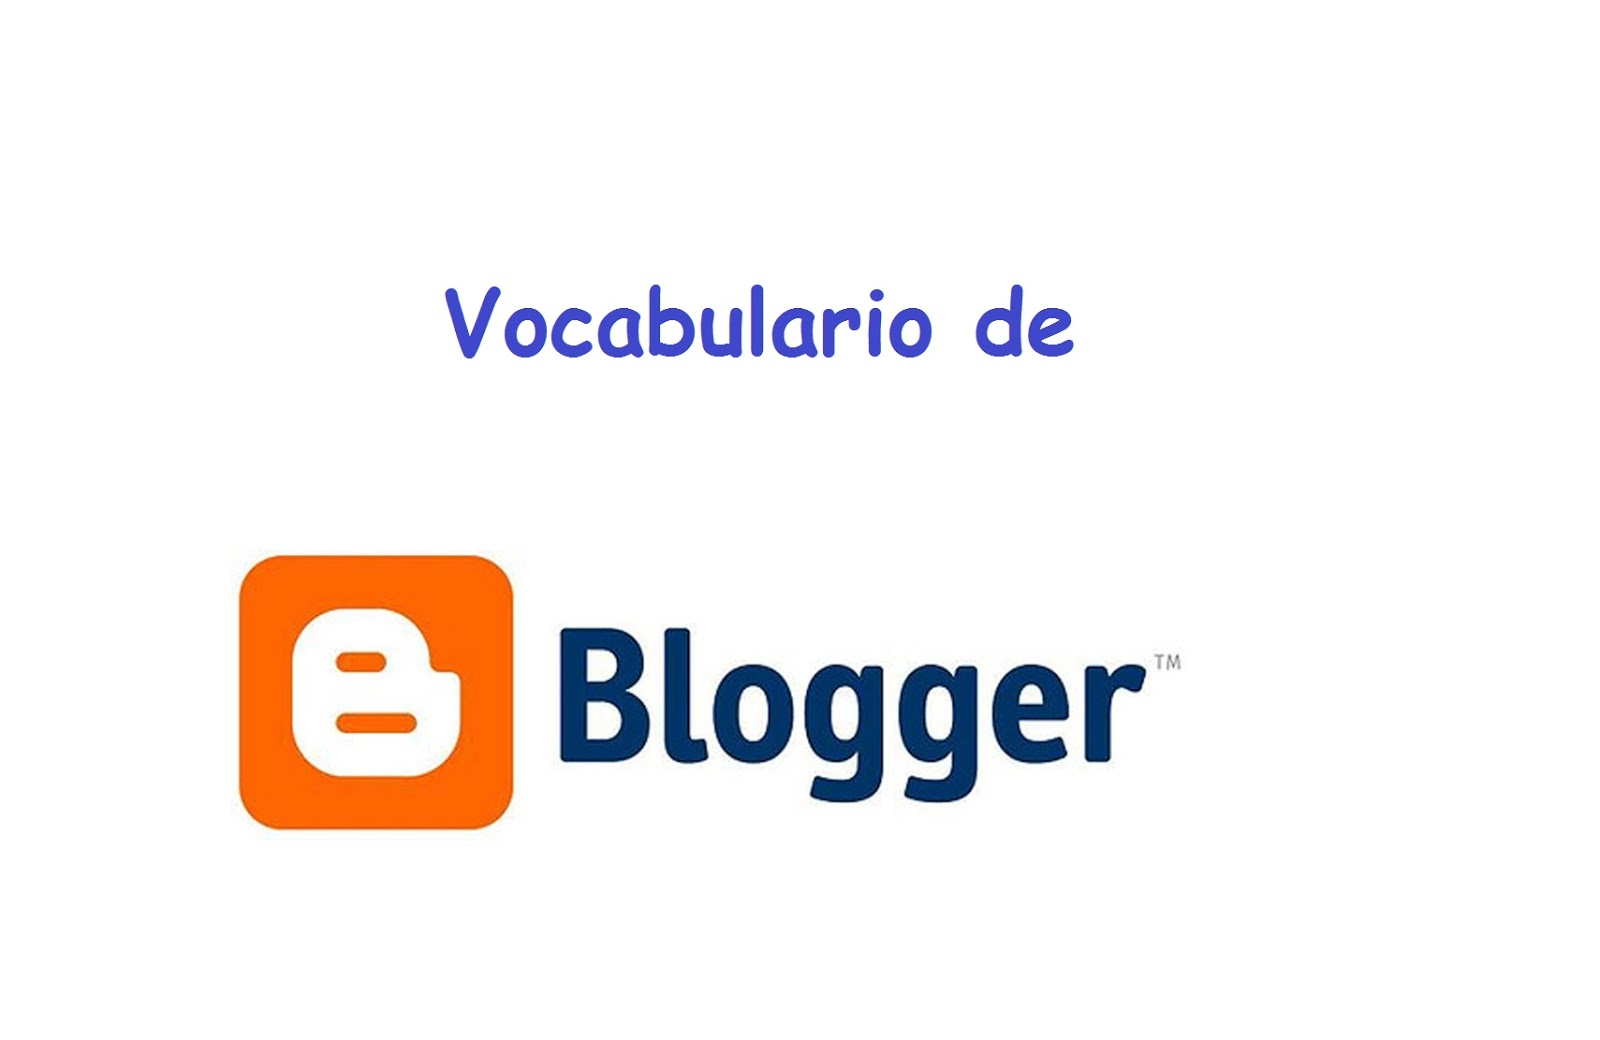 Vocabulario de bloggera